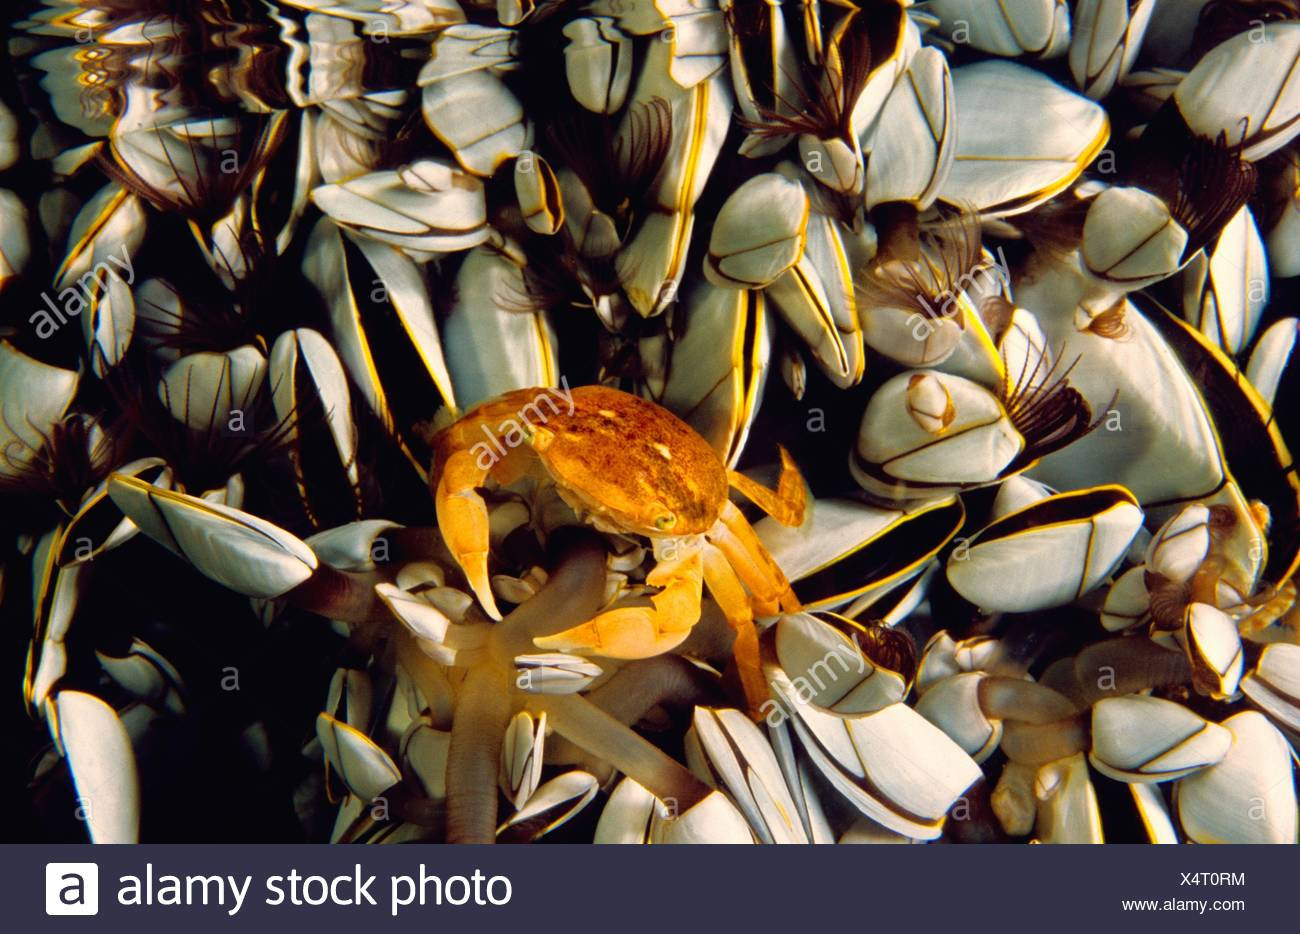 Oceanic crab (Pinoferes pinofrese) in the middle of Gooseneck barnacle, Atlantic Ocean, Azores, Portugal - Stock Image